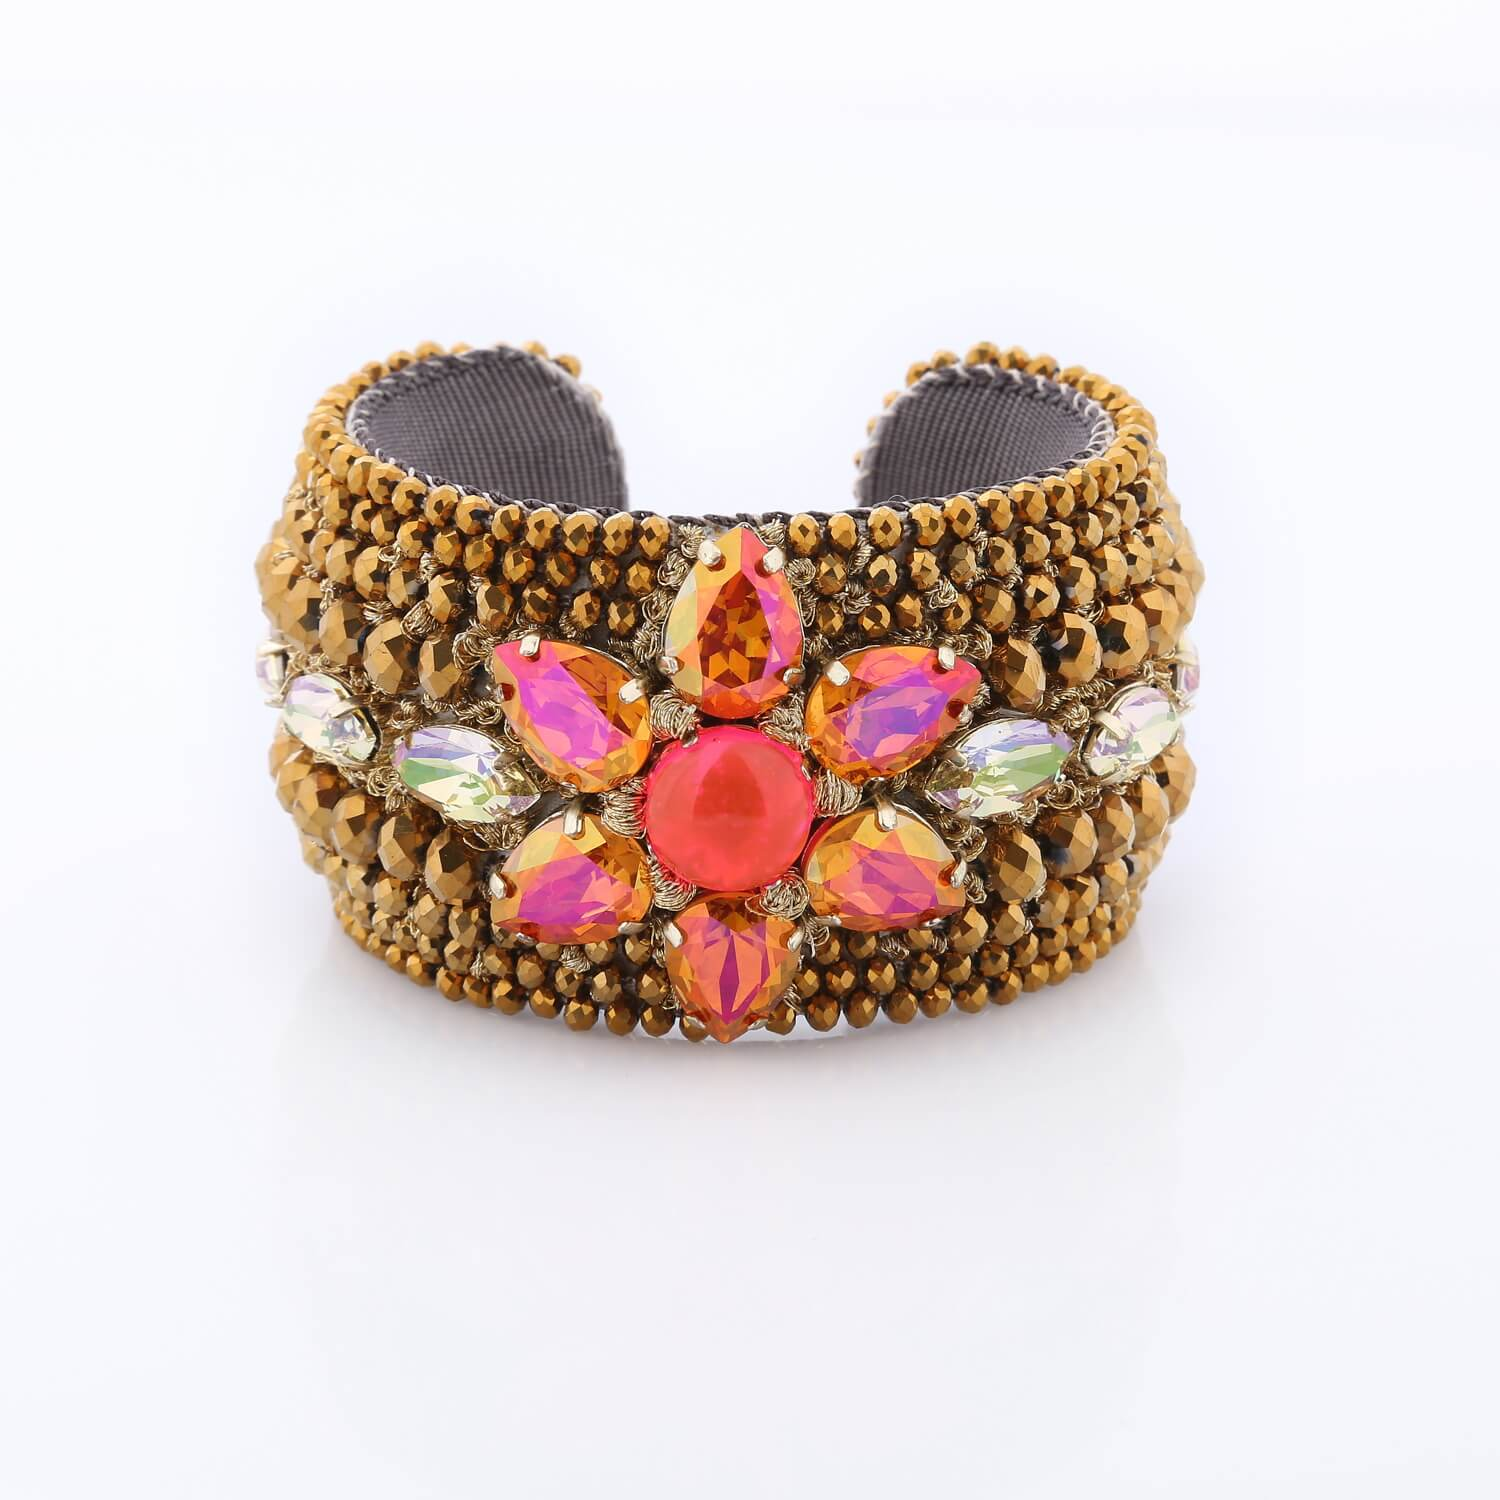 Venus Crystal Floral Cuff - Rouge Gold Tangerine